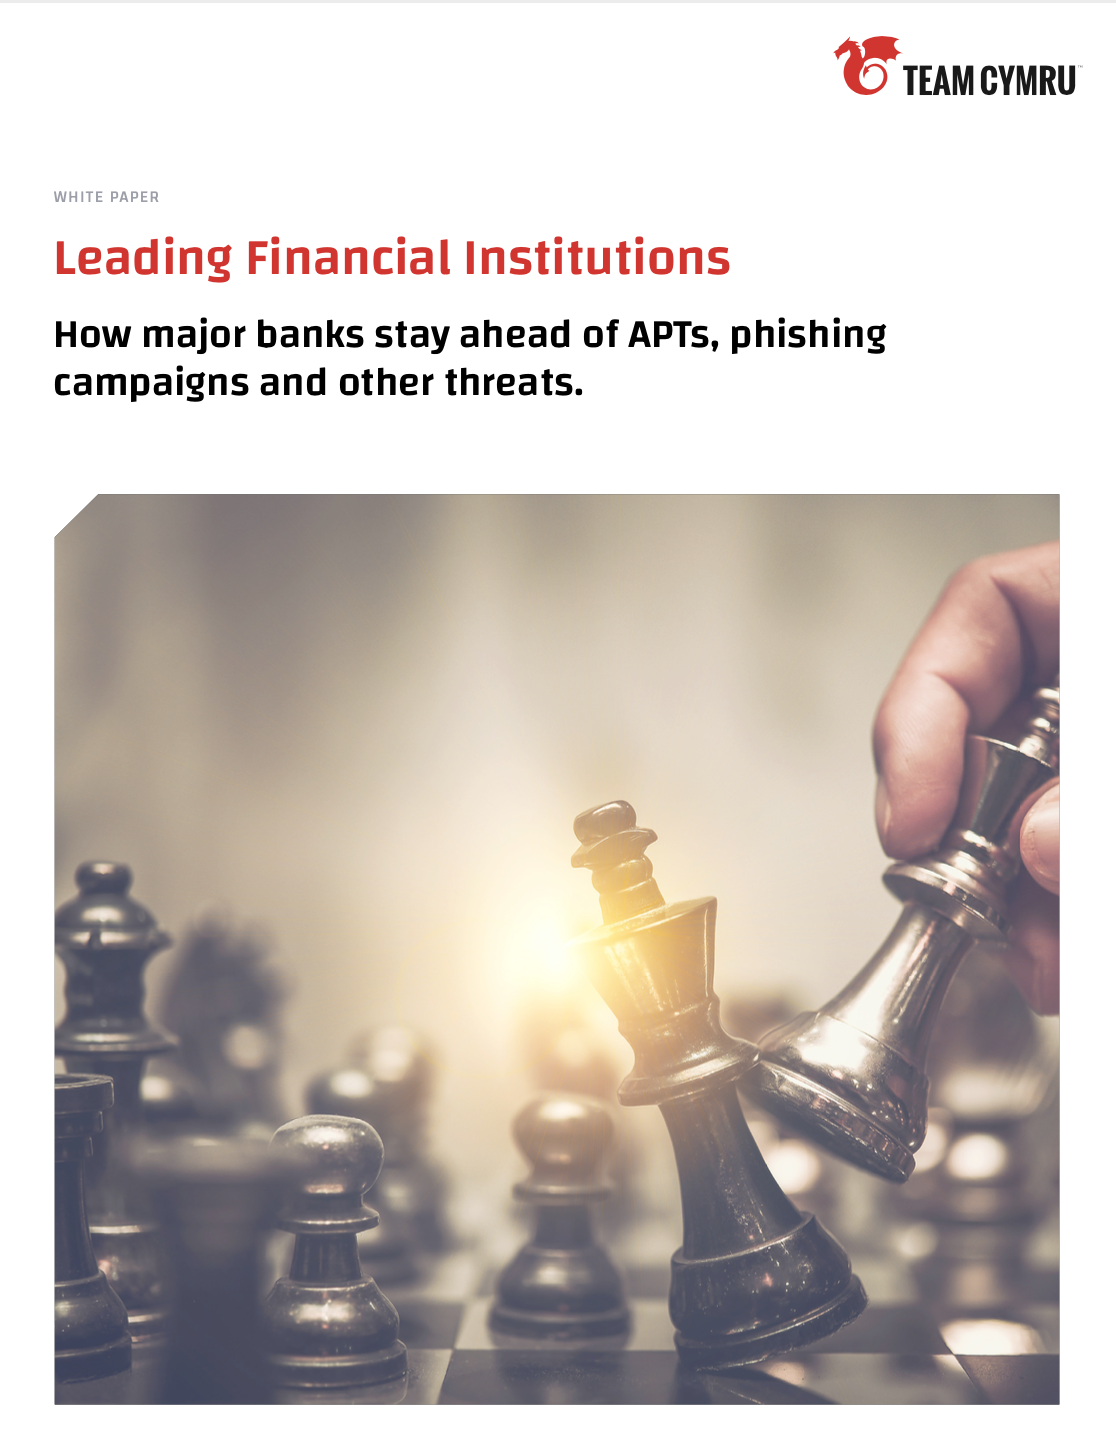 How major banks stay ahead of APTs, phishing campaigns and other threats.